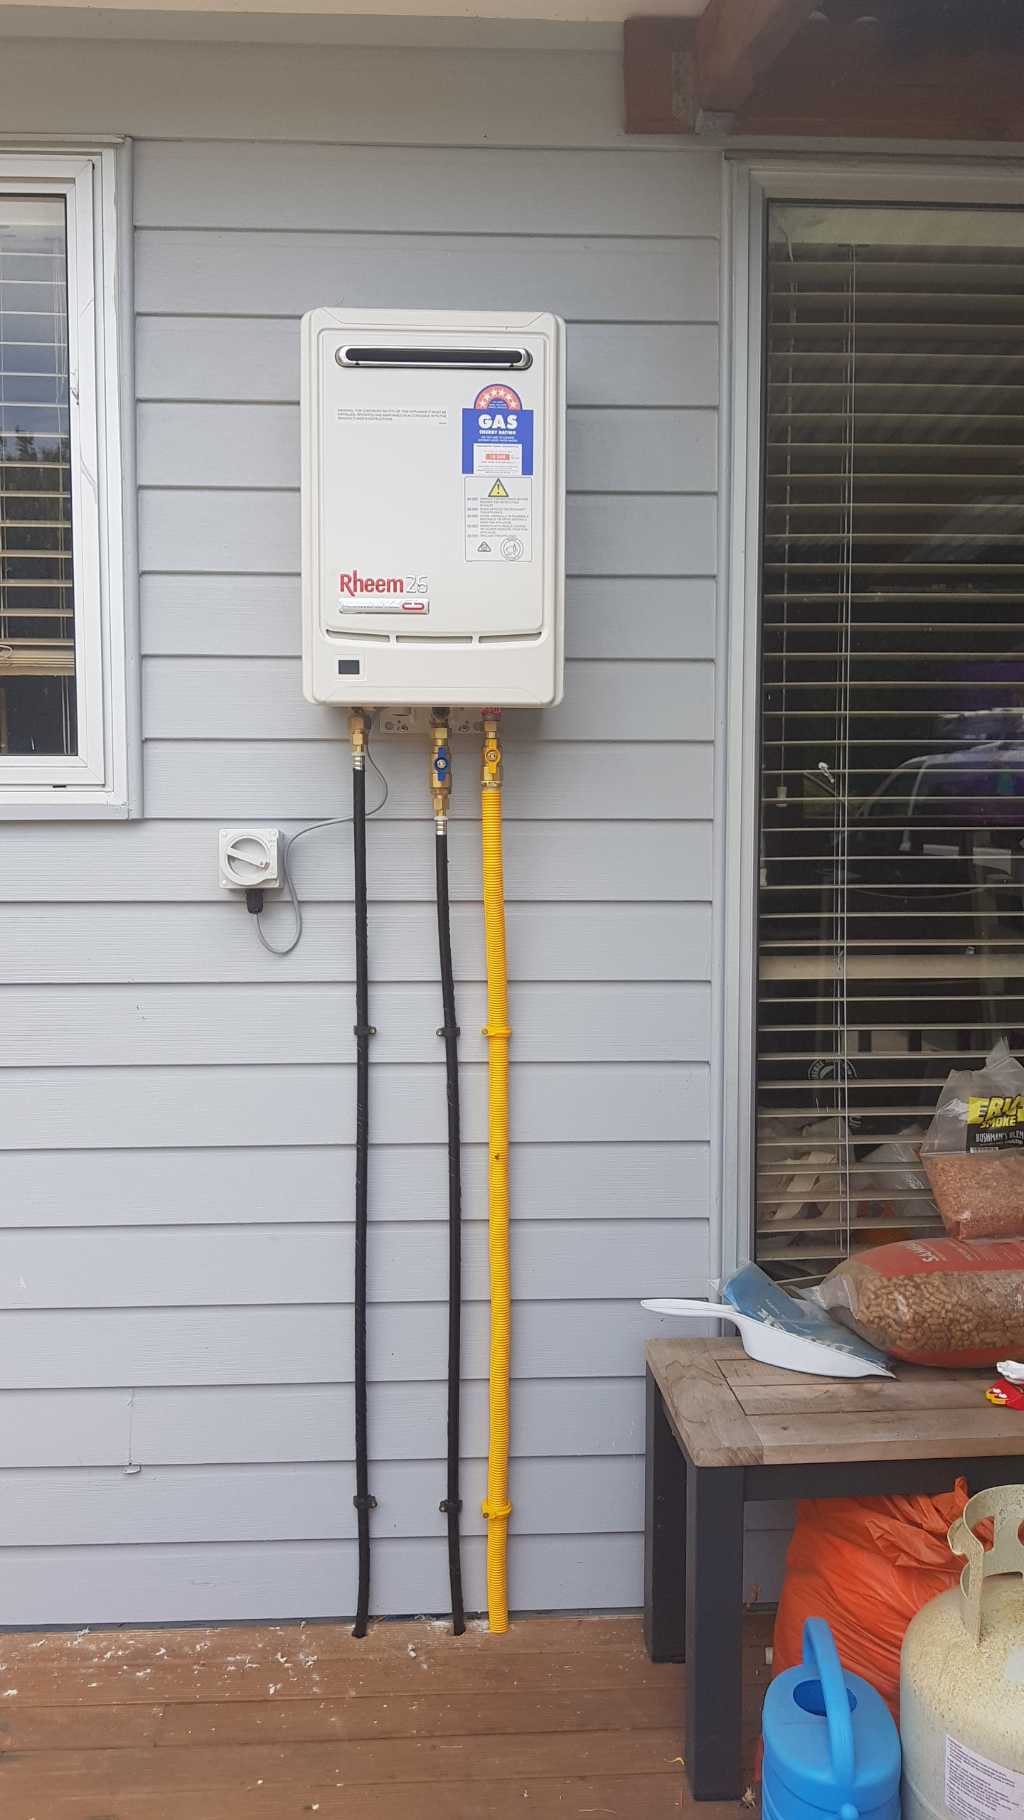 Outdoor Rheem continuous flow mains water heater